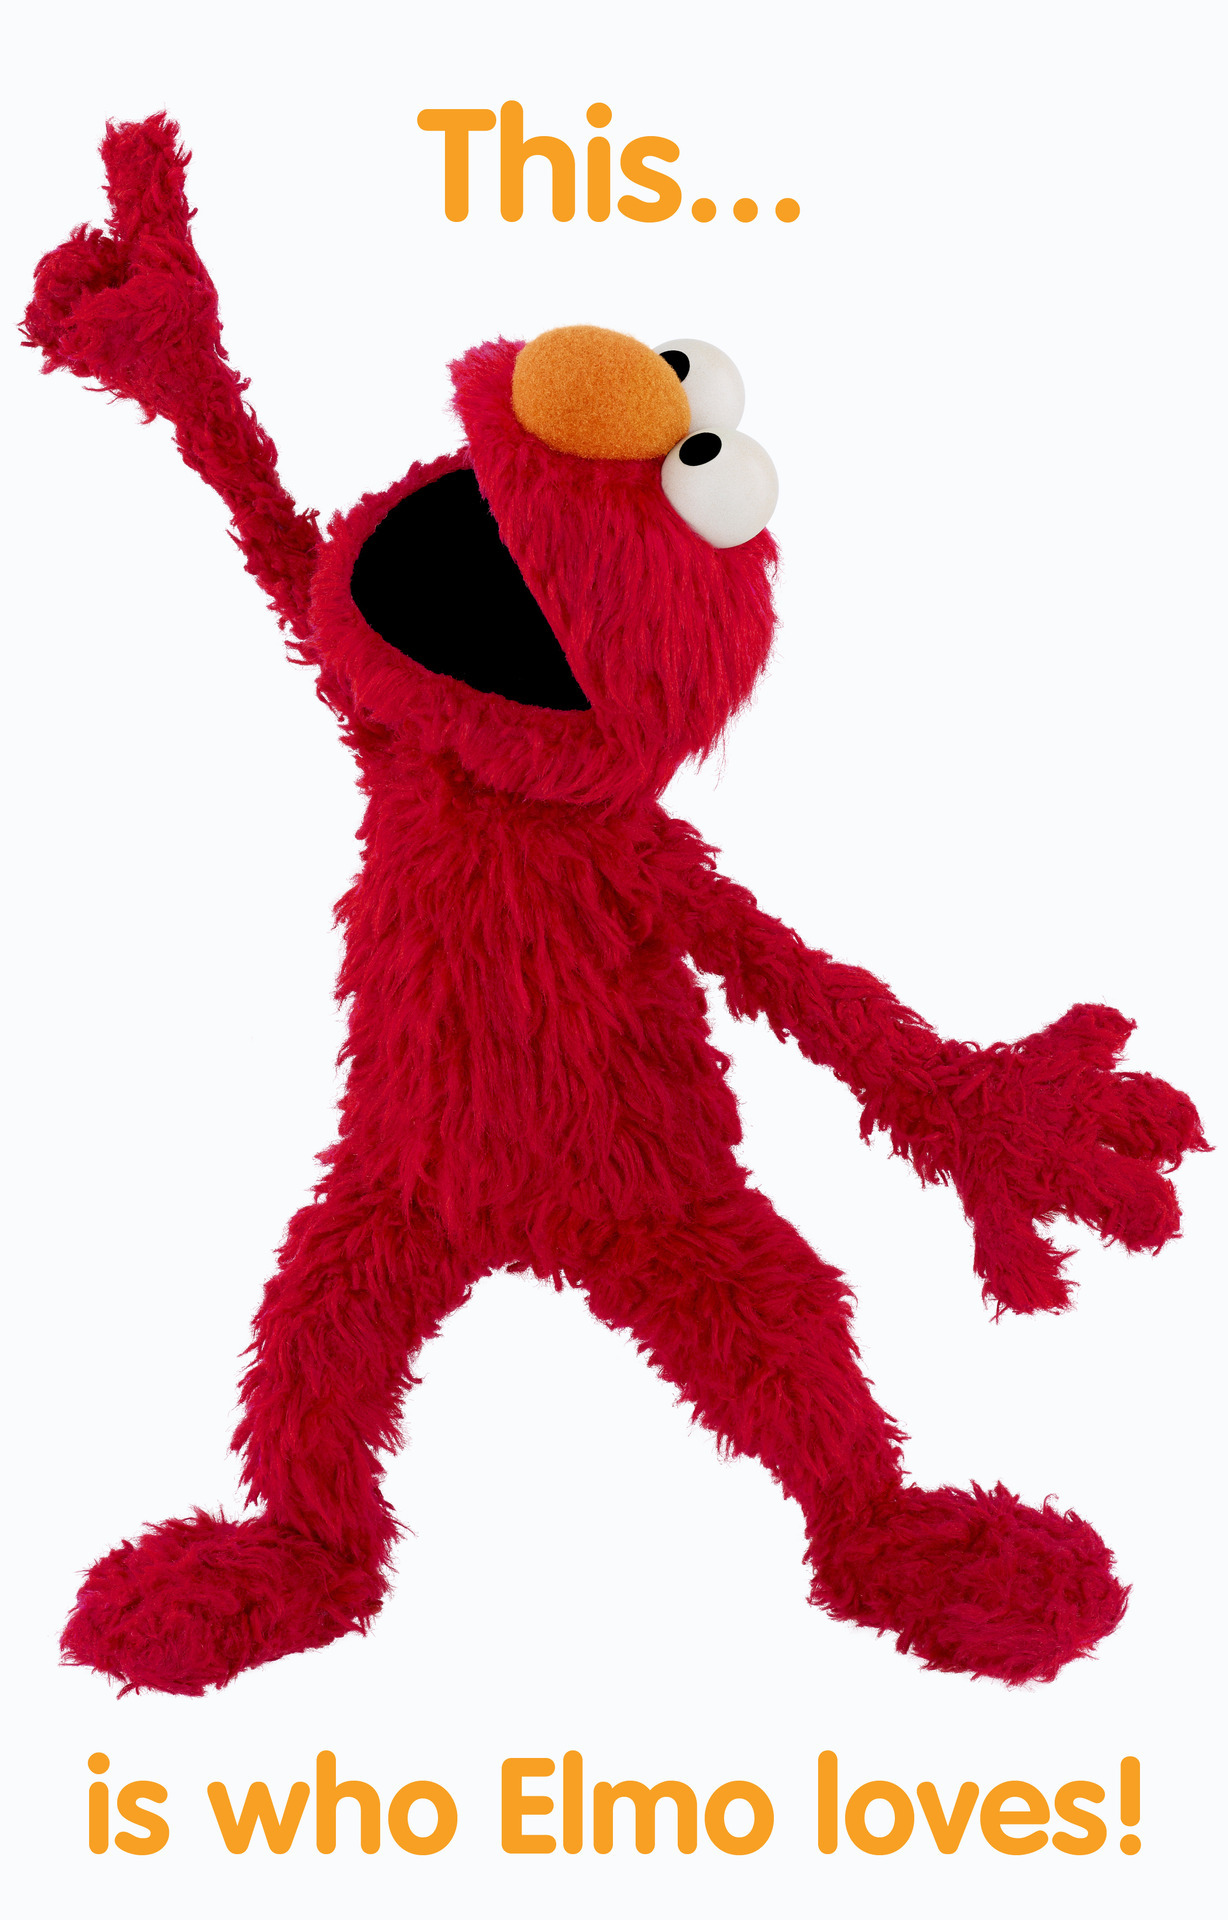 sesamestreet:  Friendship Week continues! Reblog this and Elmo will point to your name, so you can tell the world that Elmo loves you!